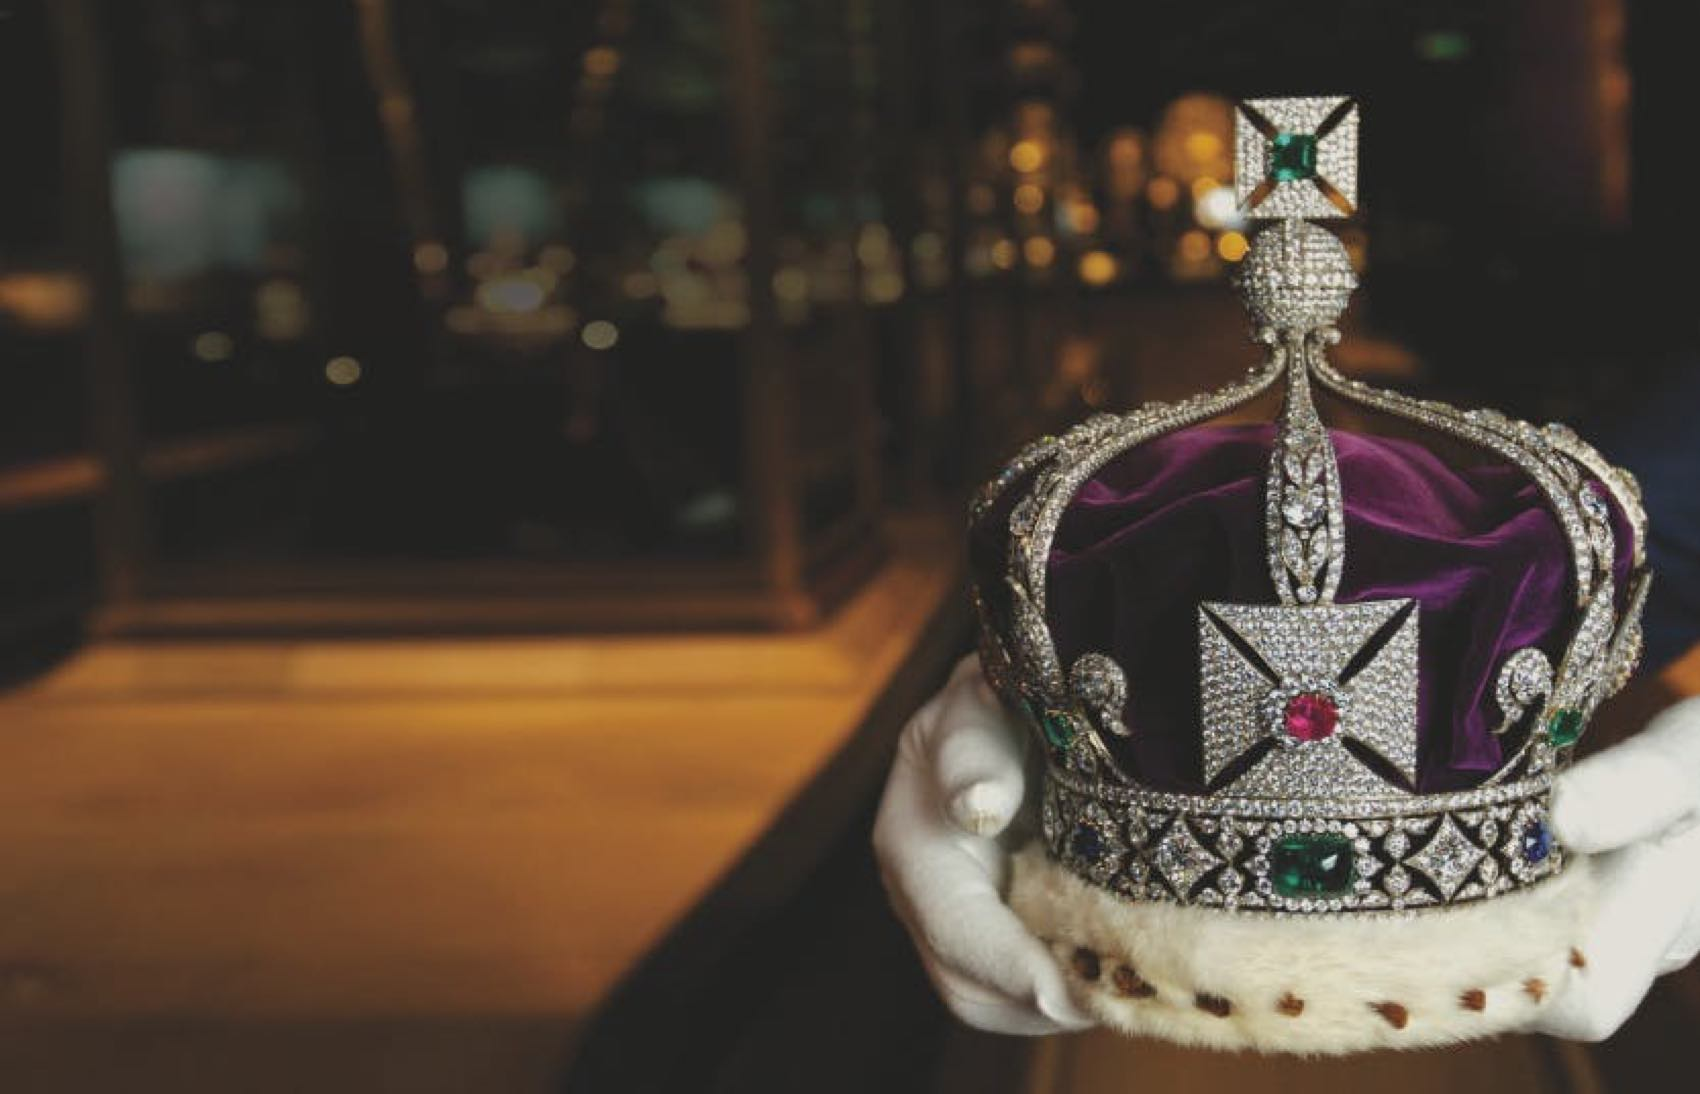 The Crown-Juwel on display at Tower of London